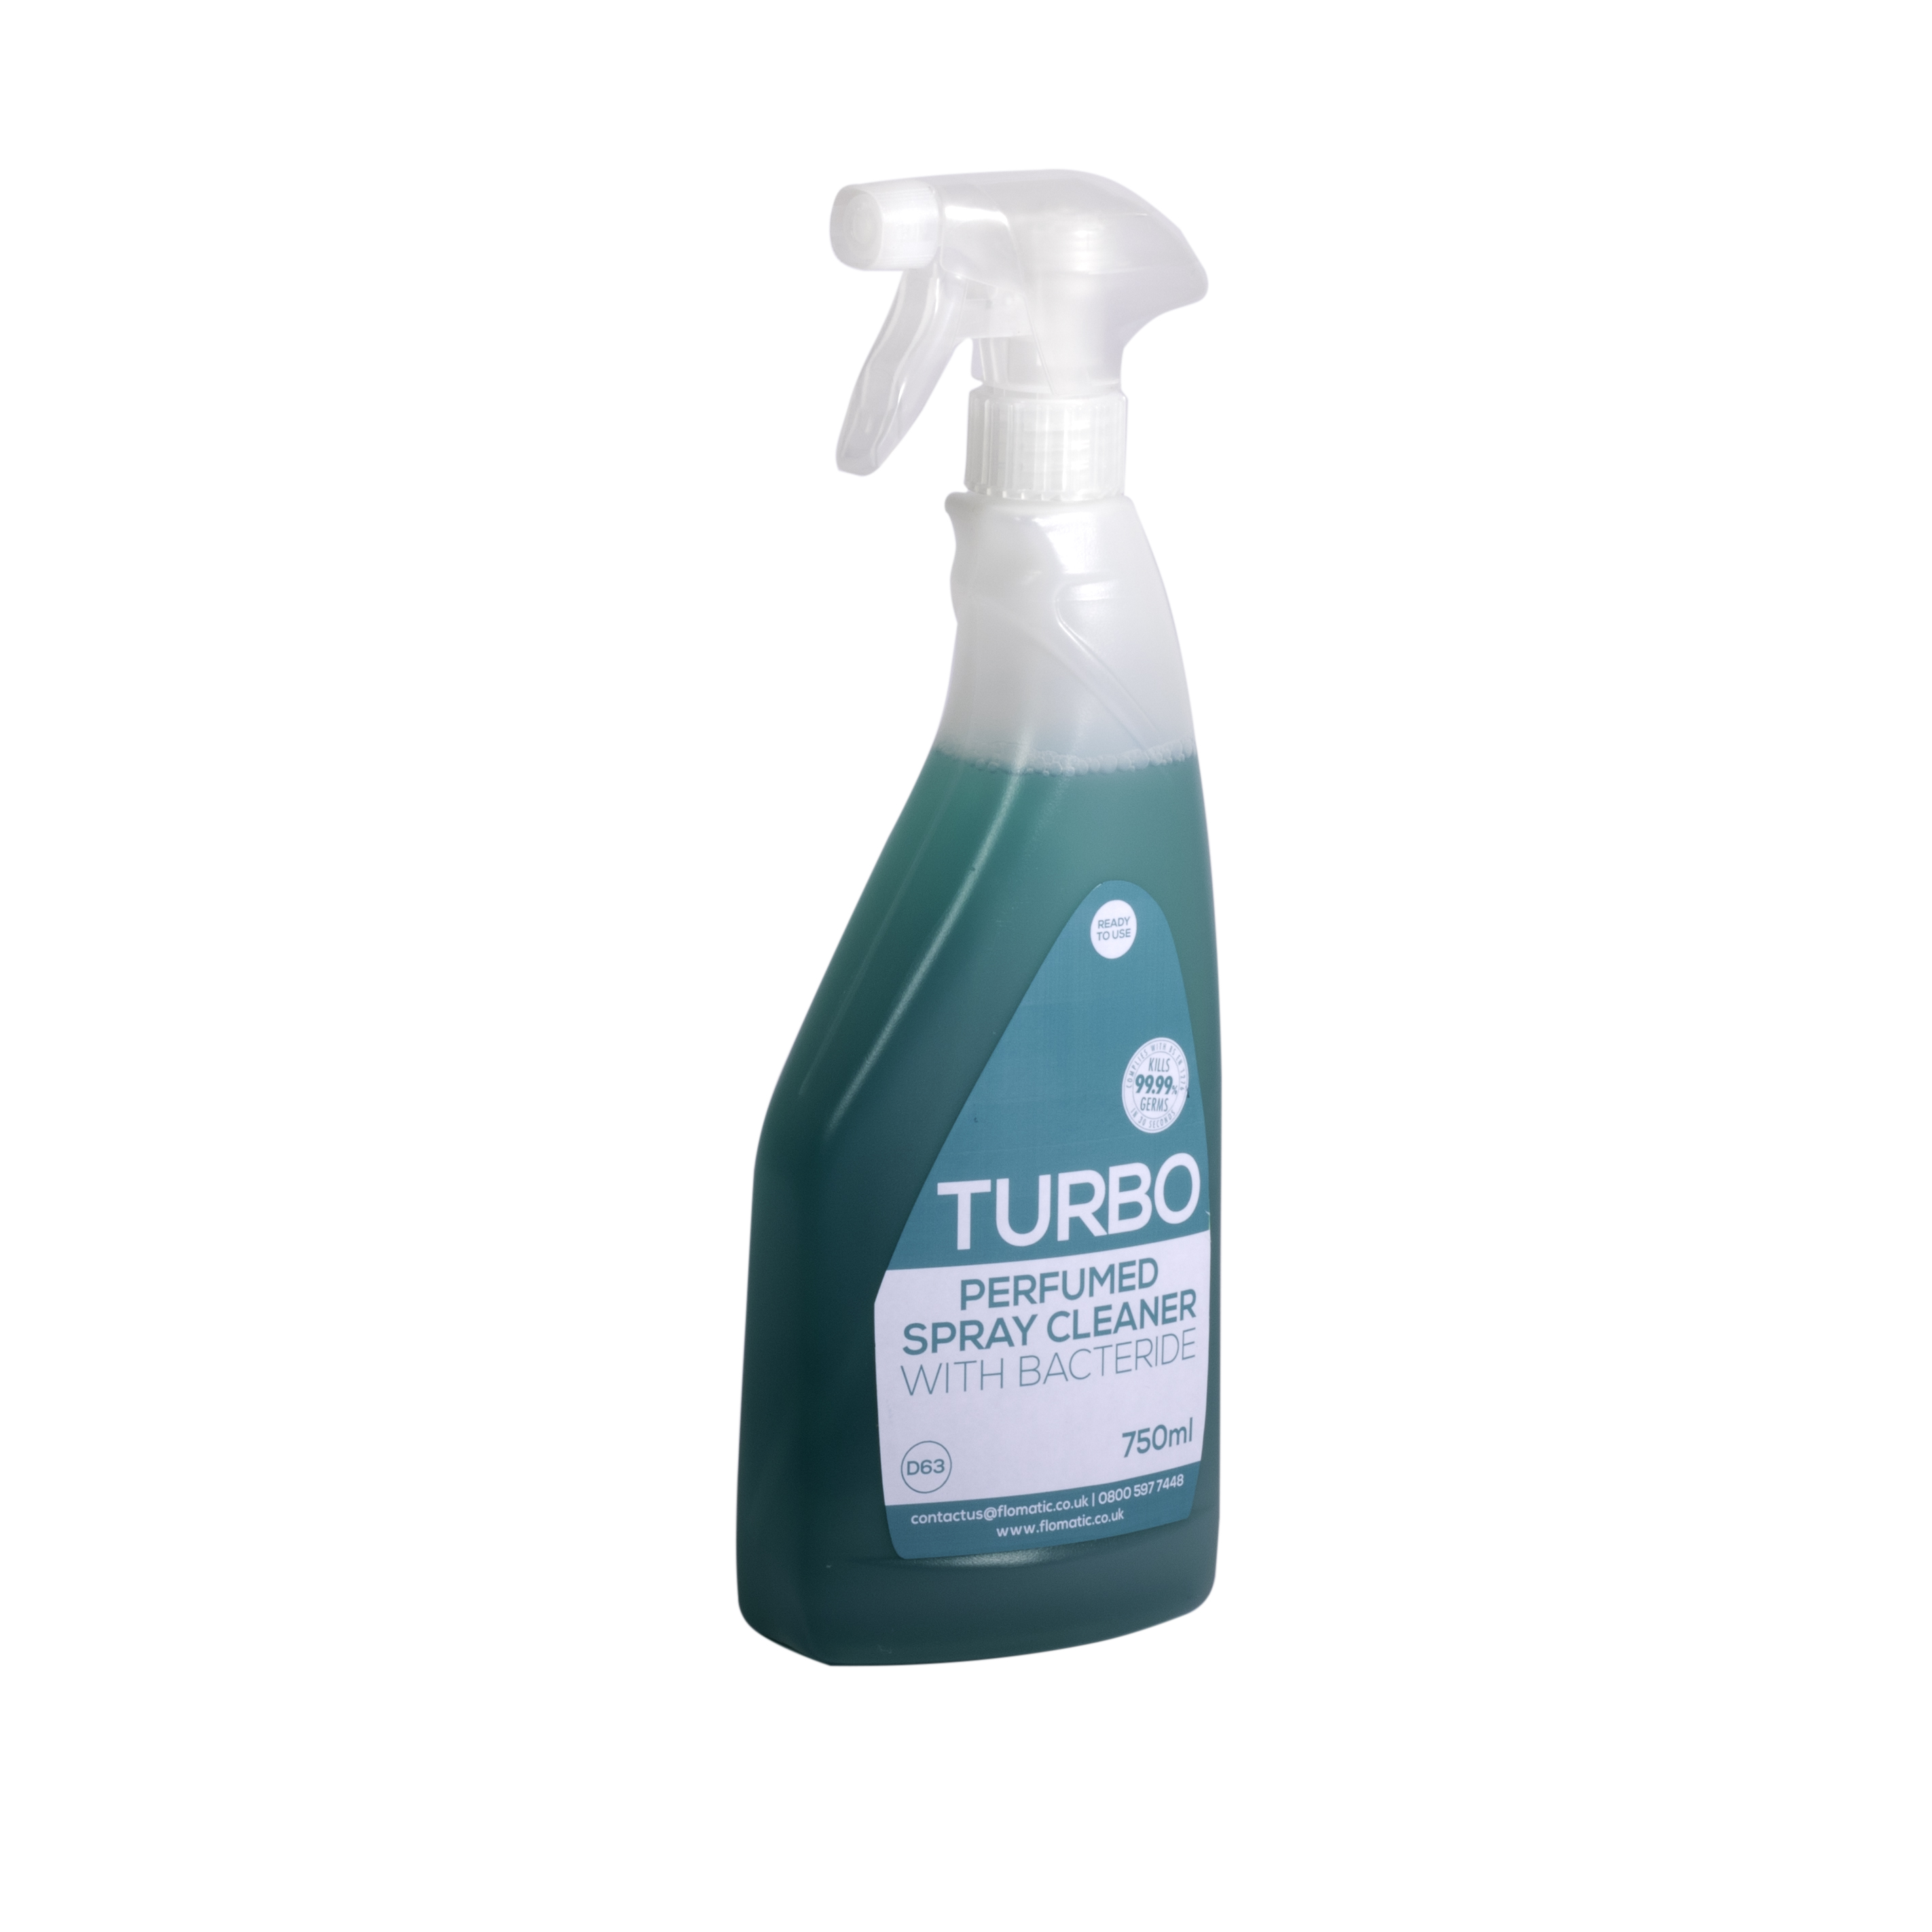 TURBO Perfumed Spray Cleaner With Bactericide